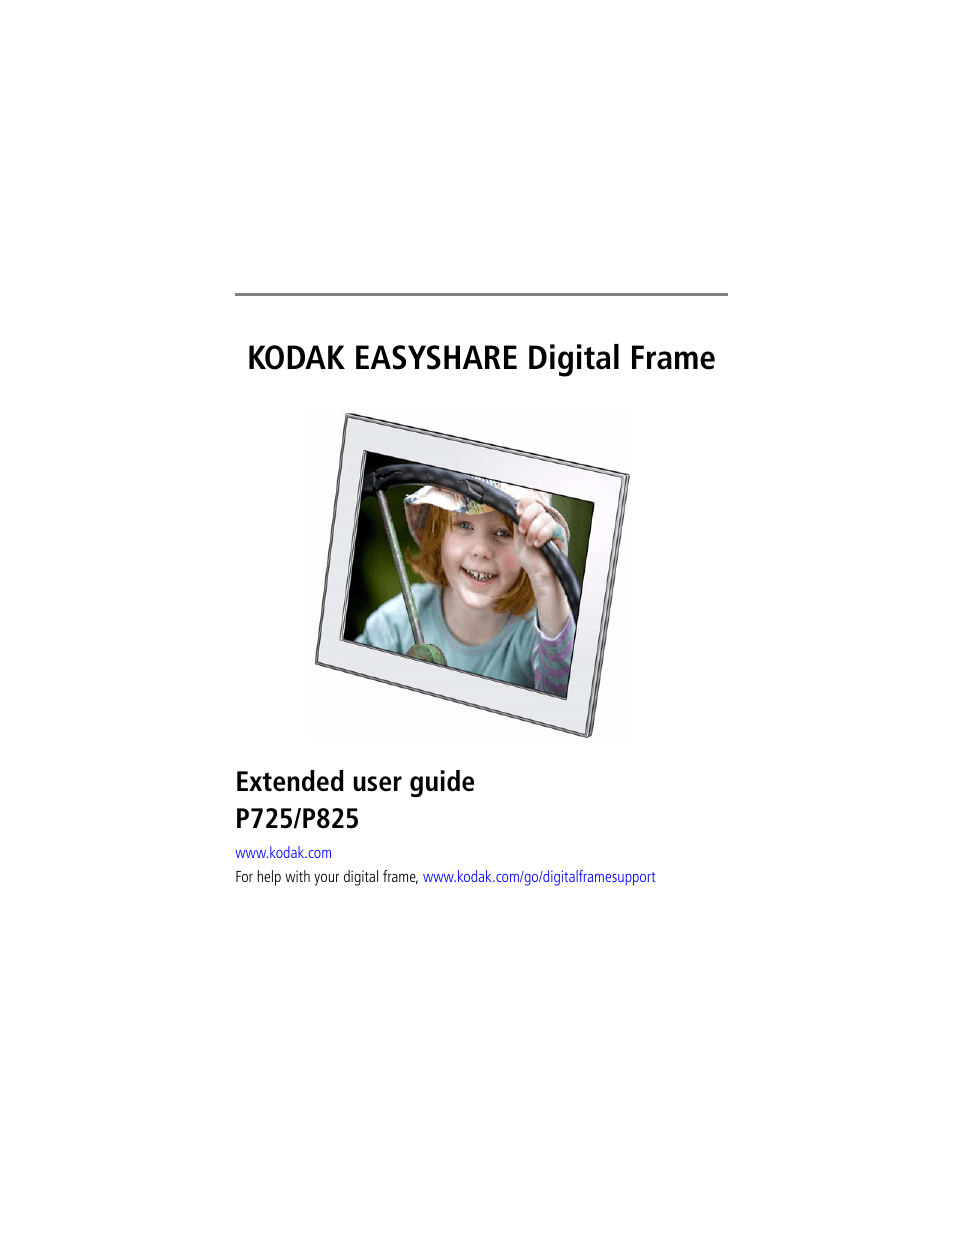 KODAK P725 MANUAL PDF